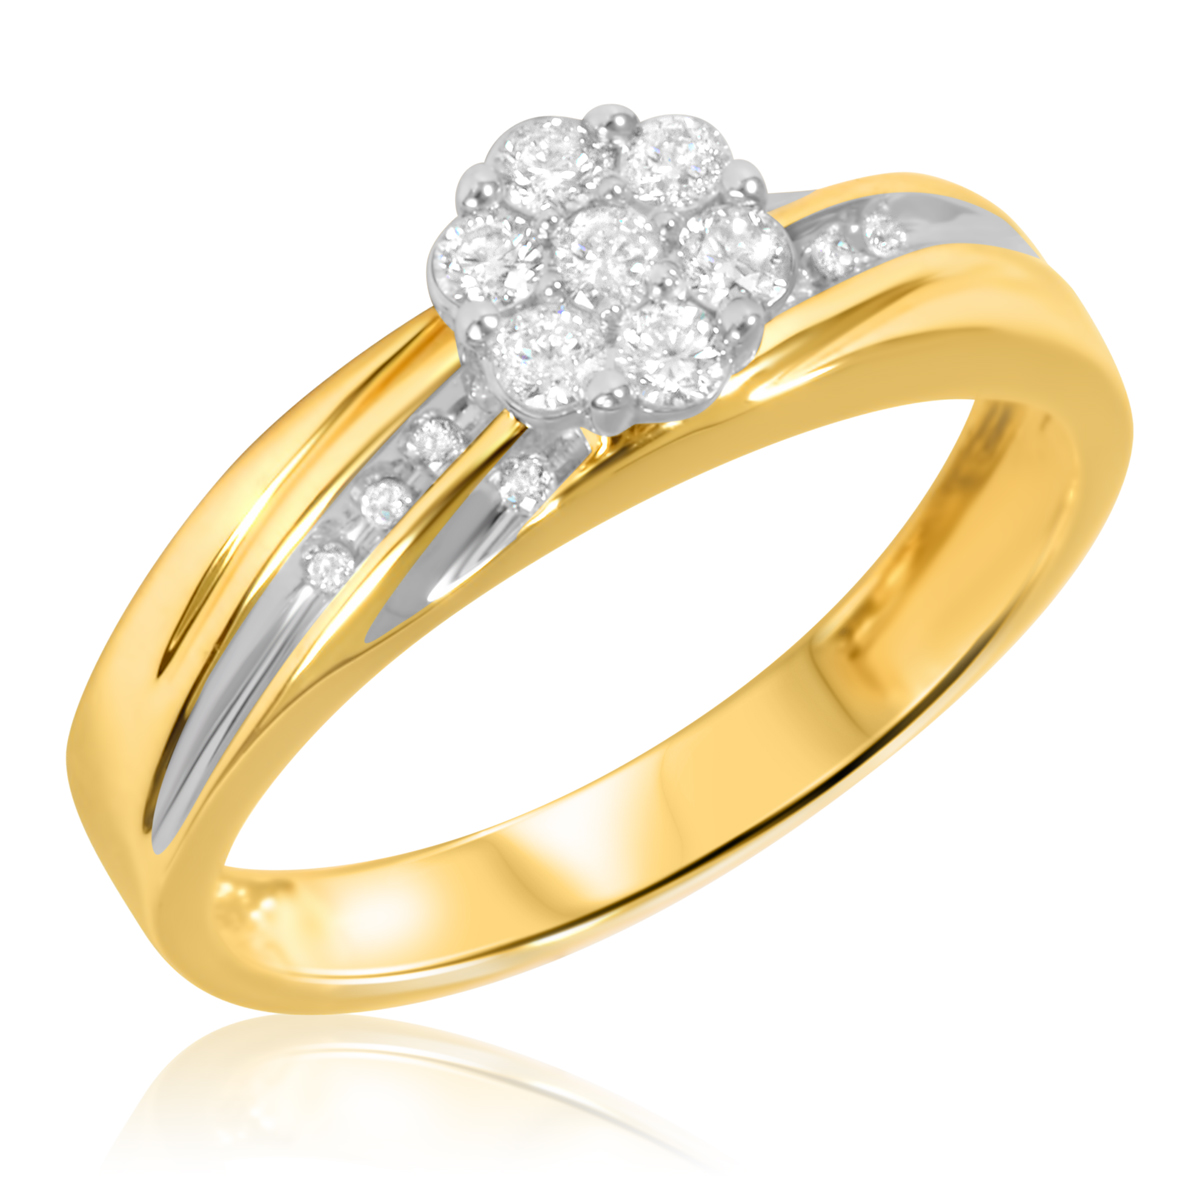 1 4 Carat TW Diamond Ladies Engagement Ring 10K Yellow Gold